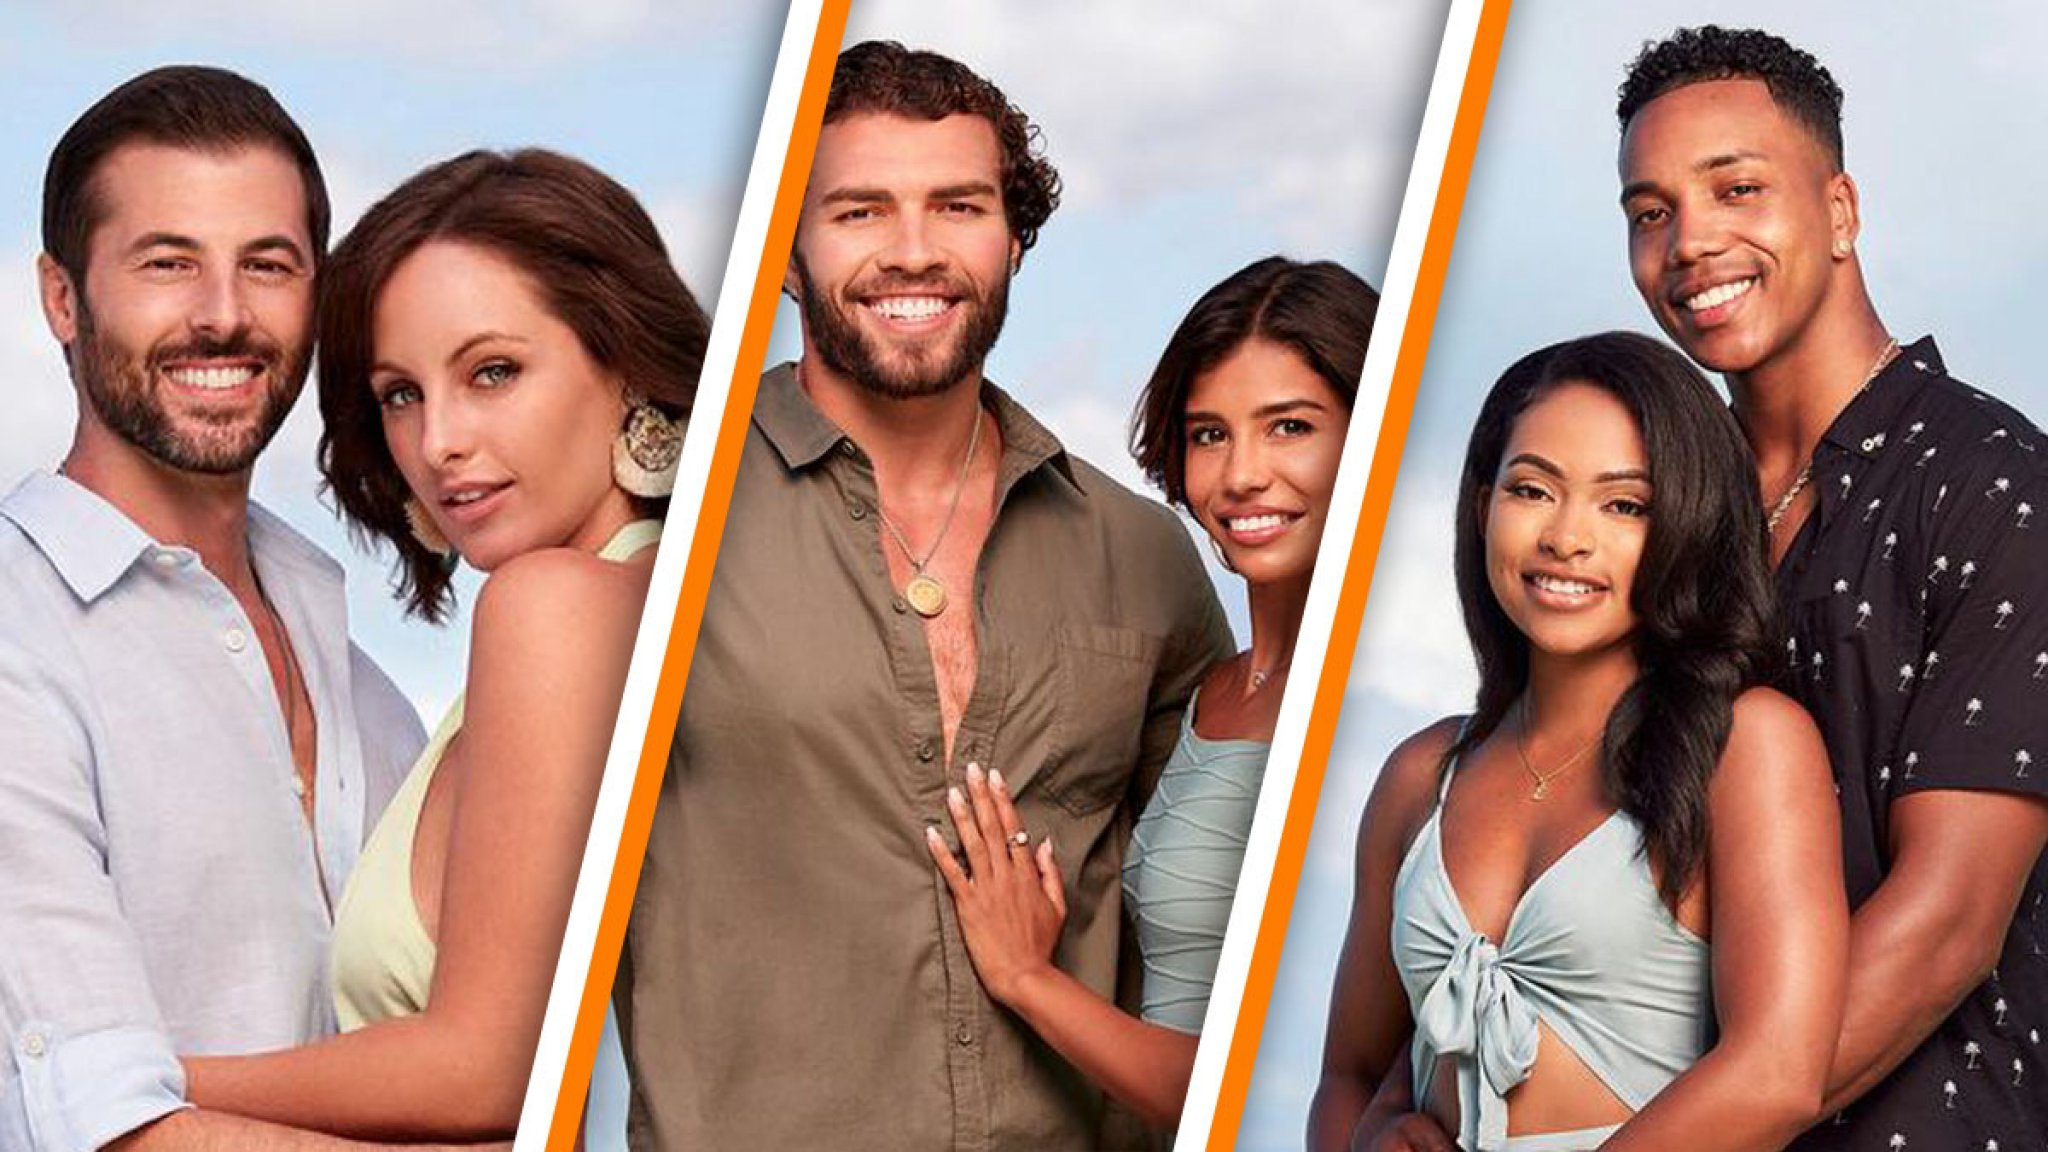 Do you think Island of Seduction is boring?  These reality shows are not